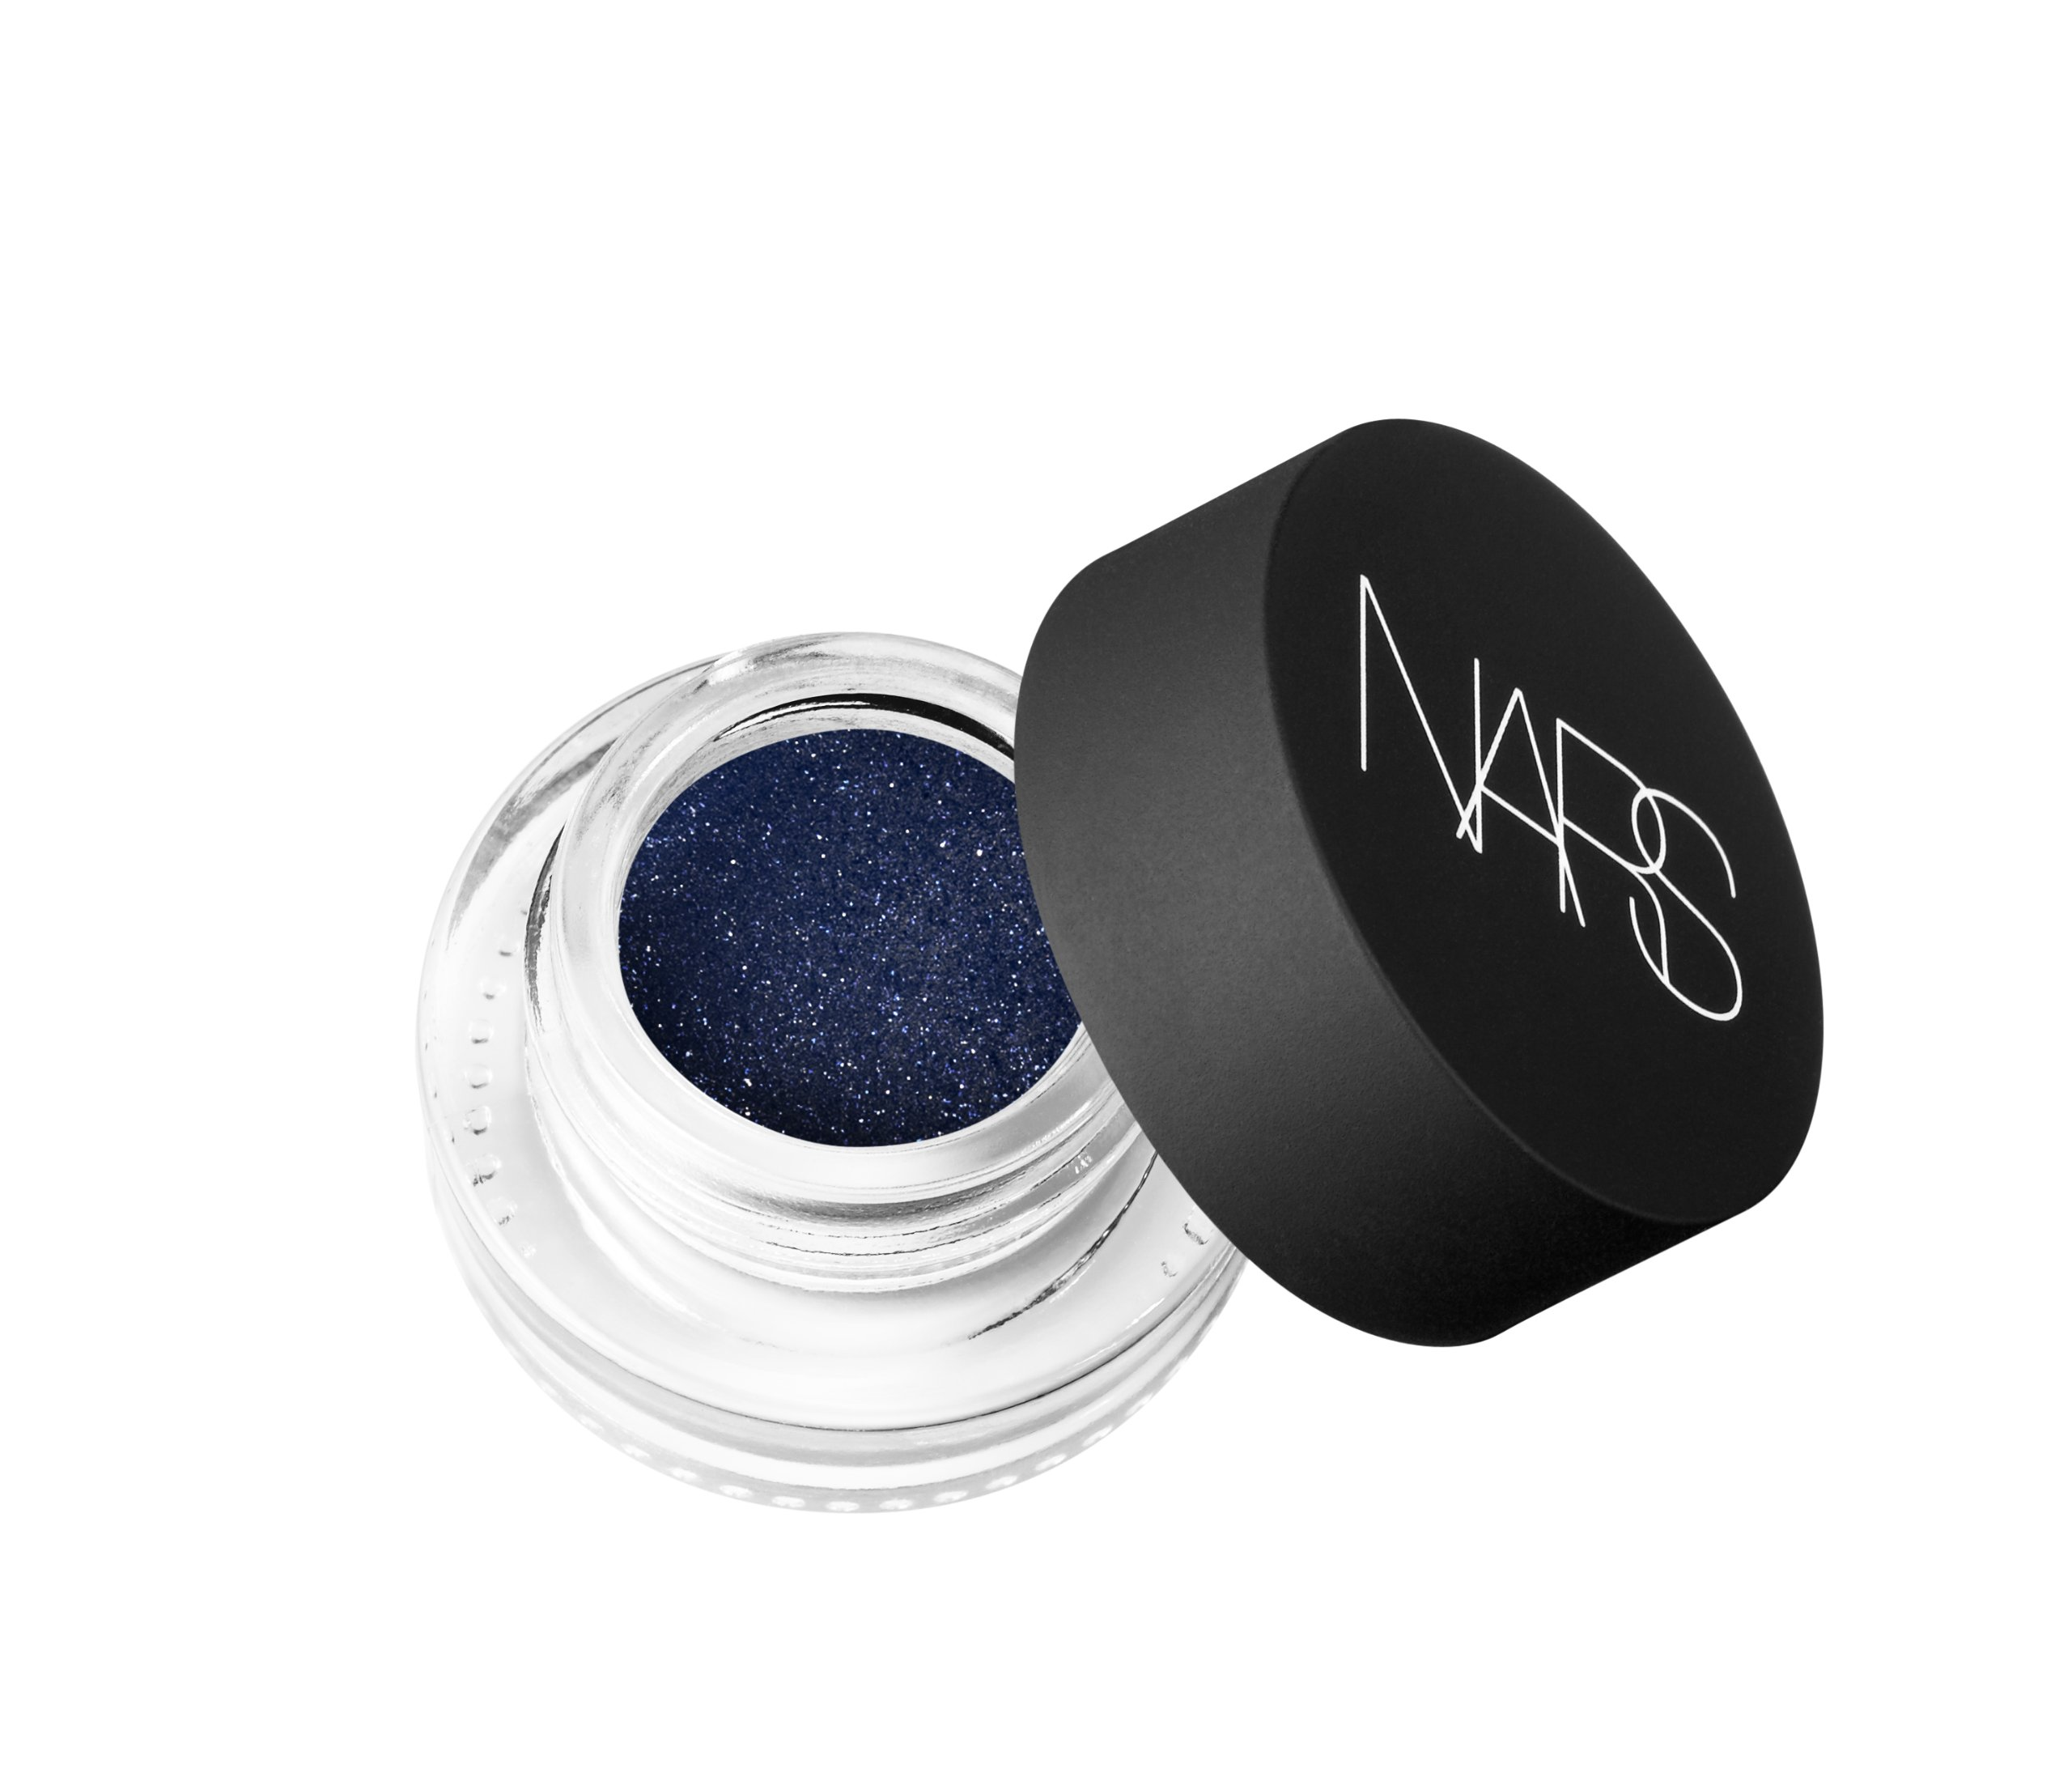 NARS Eye Paint, Ubangi